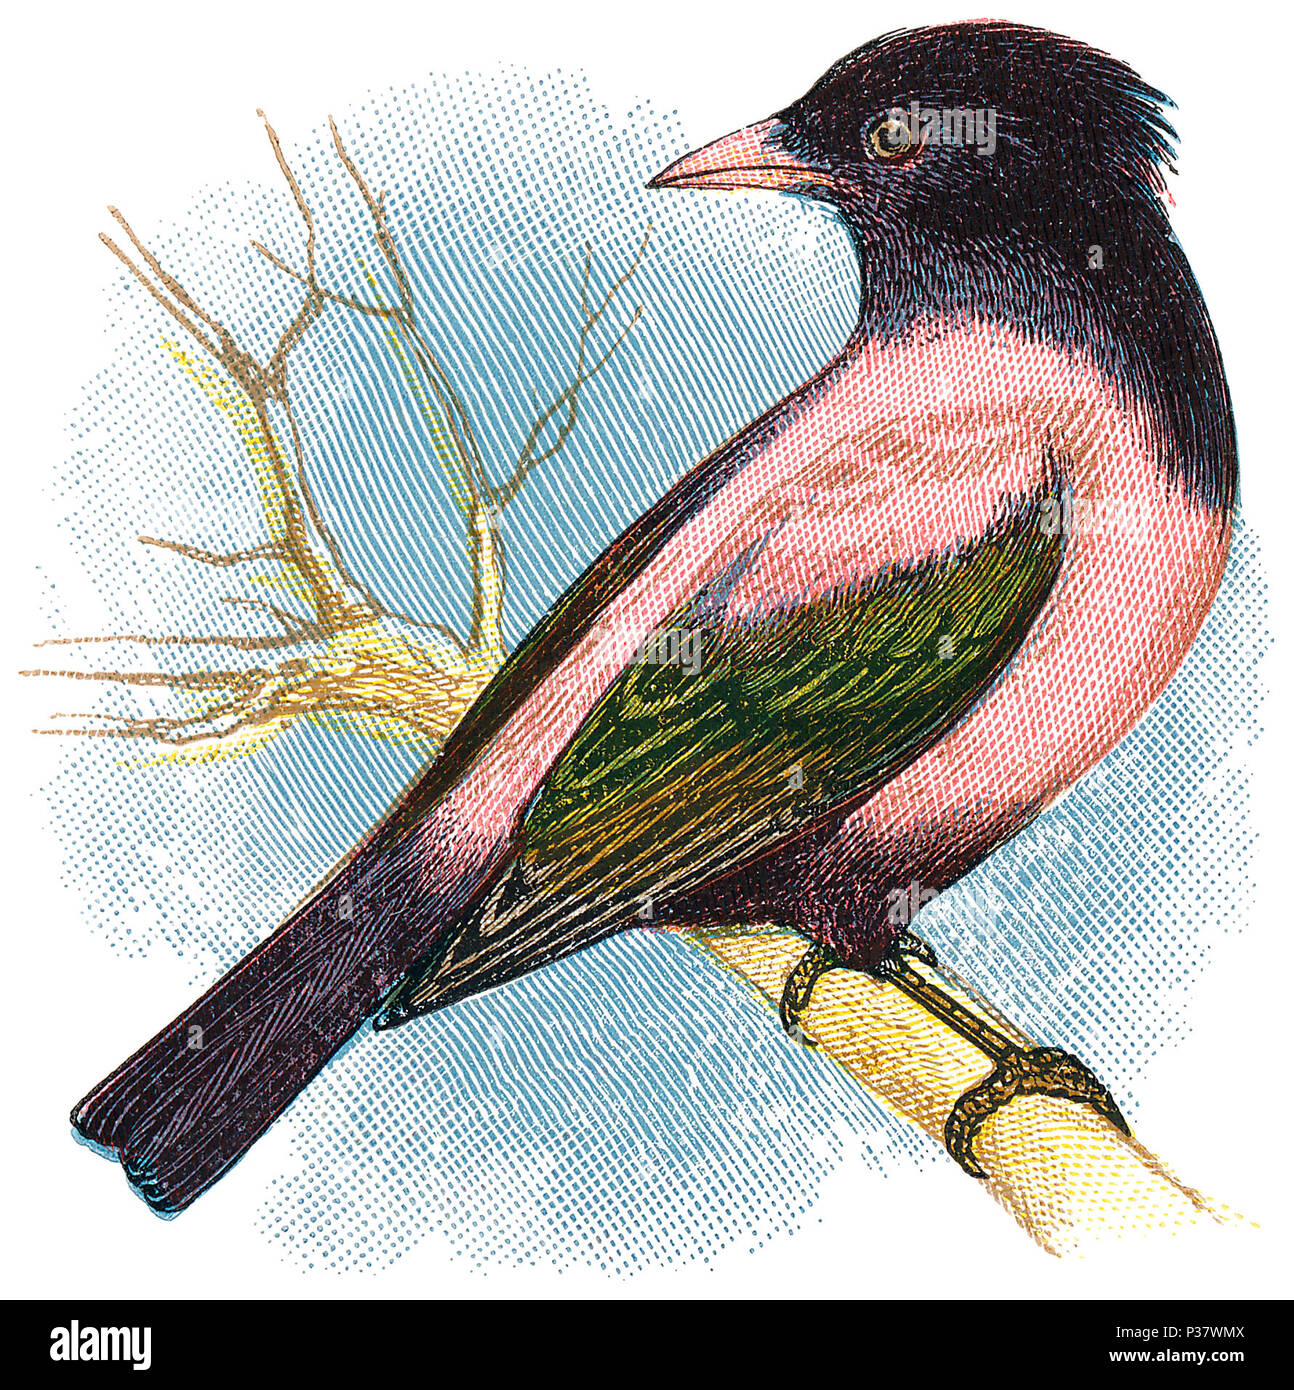 1898 colour engraving of rosy starling or rose-coloured starling (pastor roseus). - Stock Image